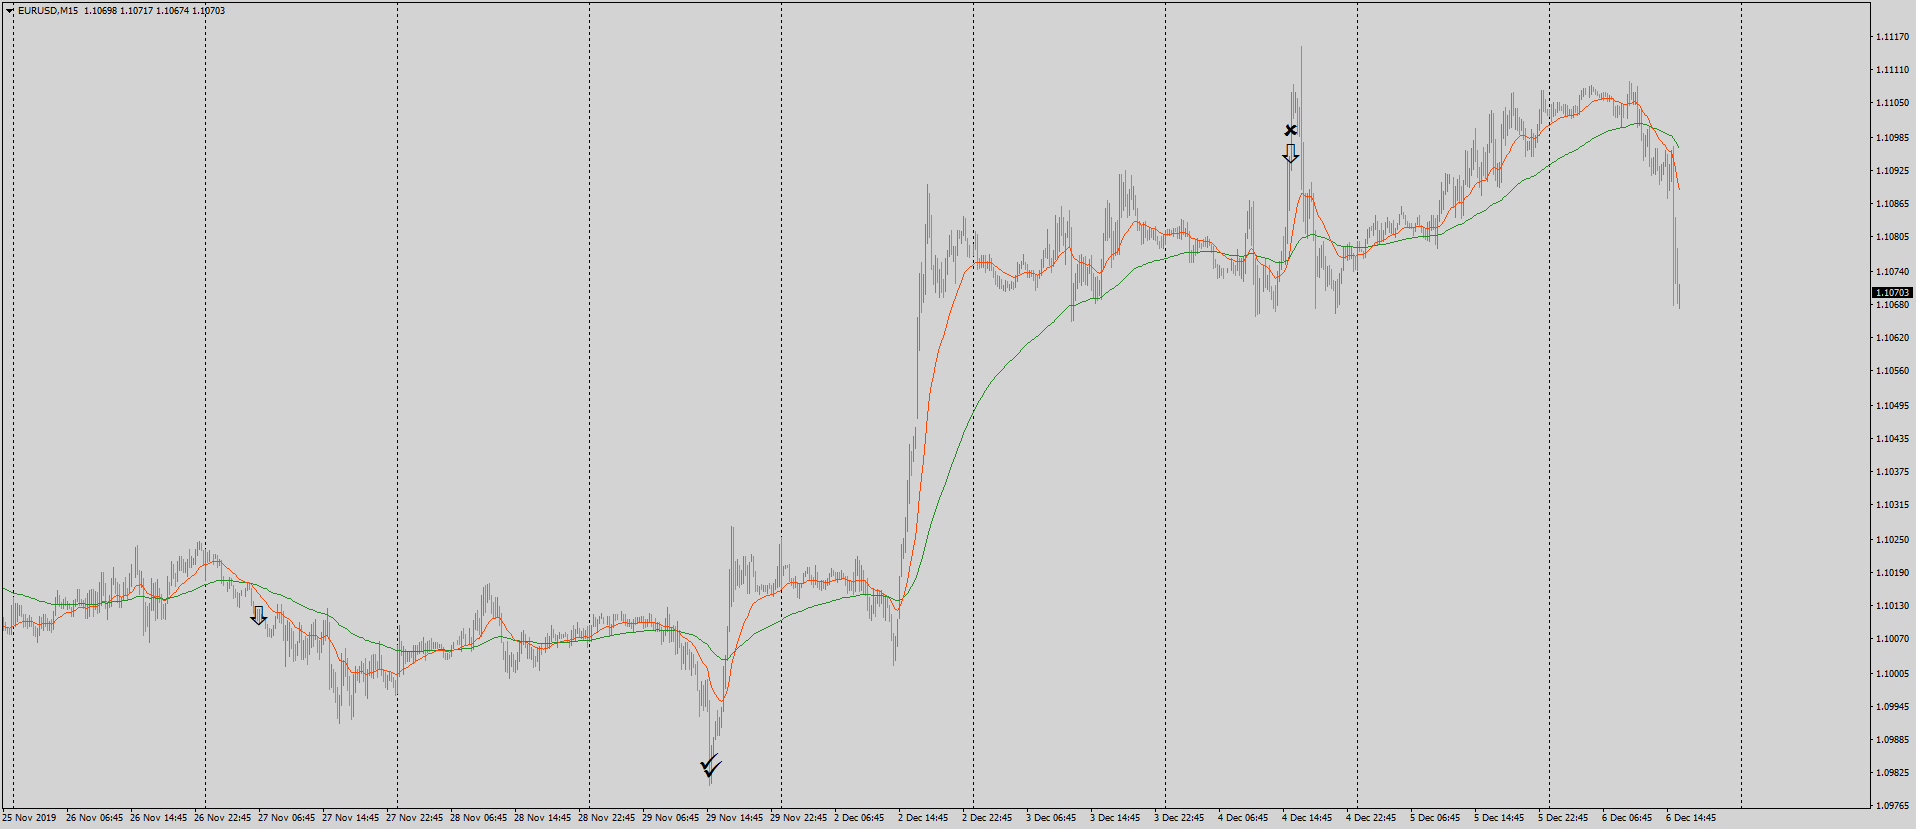 19-12-06-eurusd-m15-tradexfin-limited.png